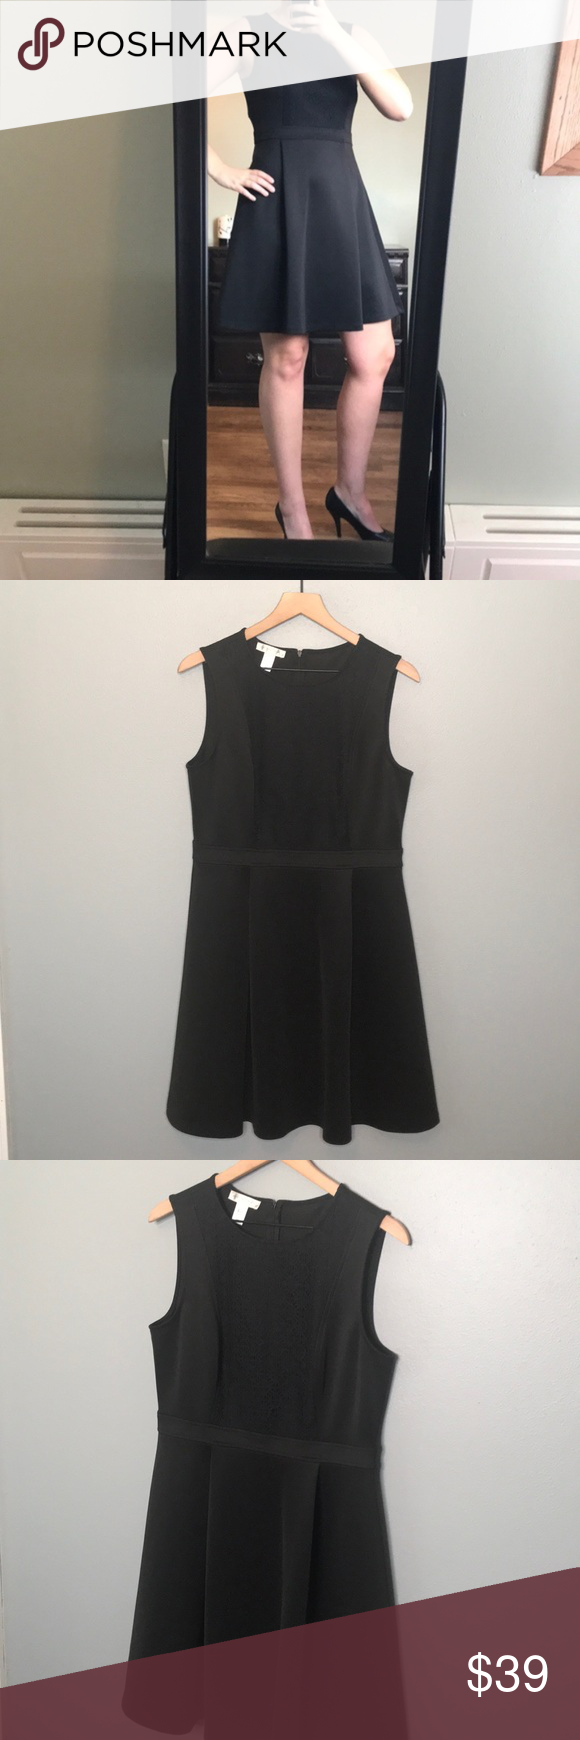 London Times Black Fit And Flare Dress Size 12 In 2021 Fit And Flare Dress Little Black Dress Classy Black Dresses Classy [ 1740 x 580 Pixel ]